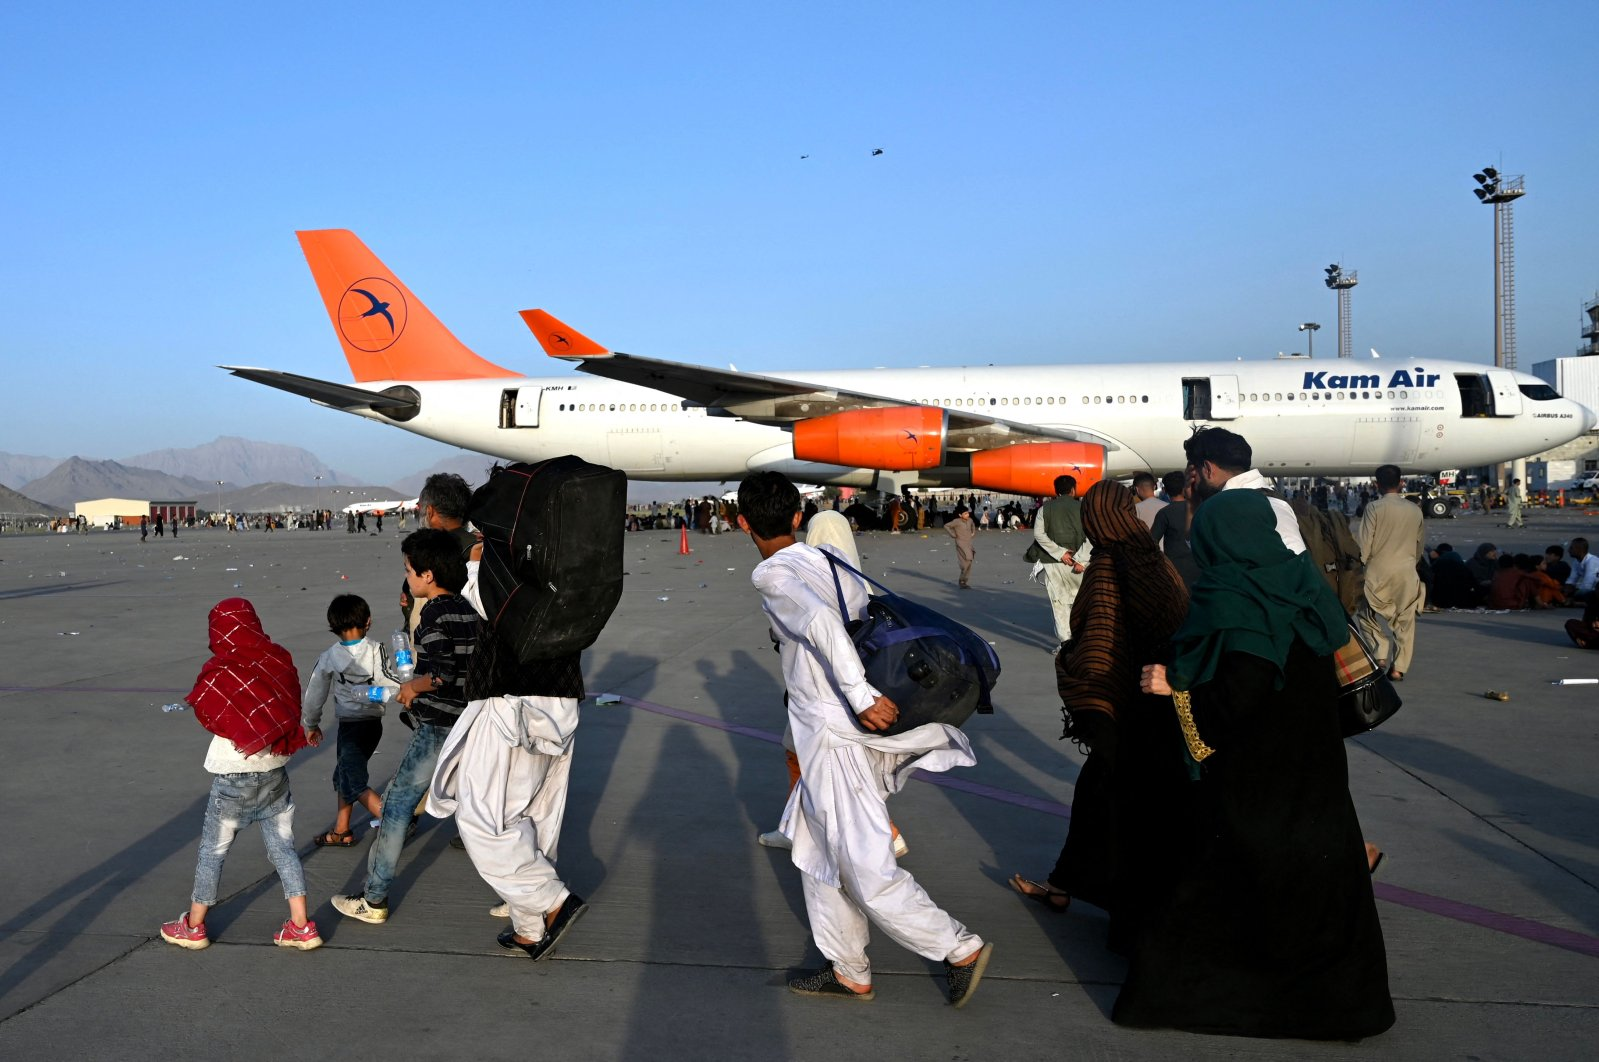 Afghan families walk by the aircraft at the Kabul airport in Kabul, Afghanistan, Aug.16, 2021. (AFP Photo)